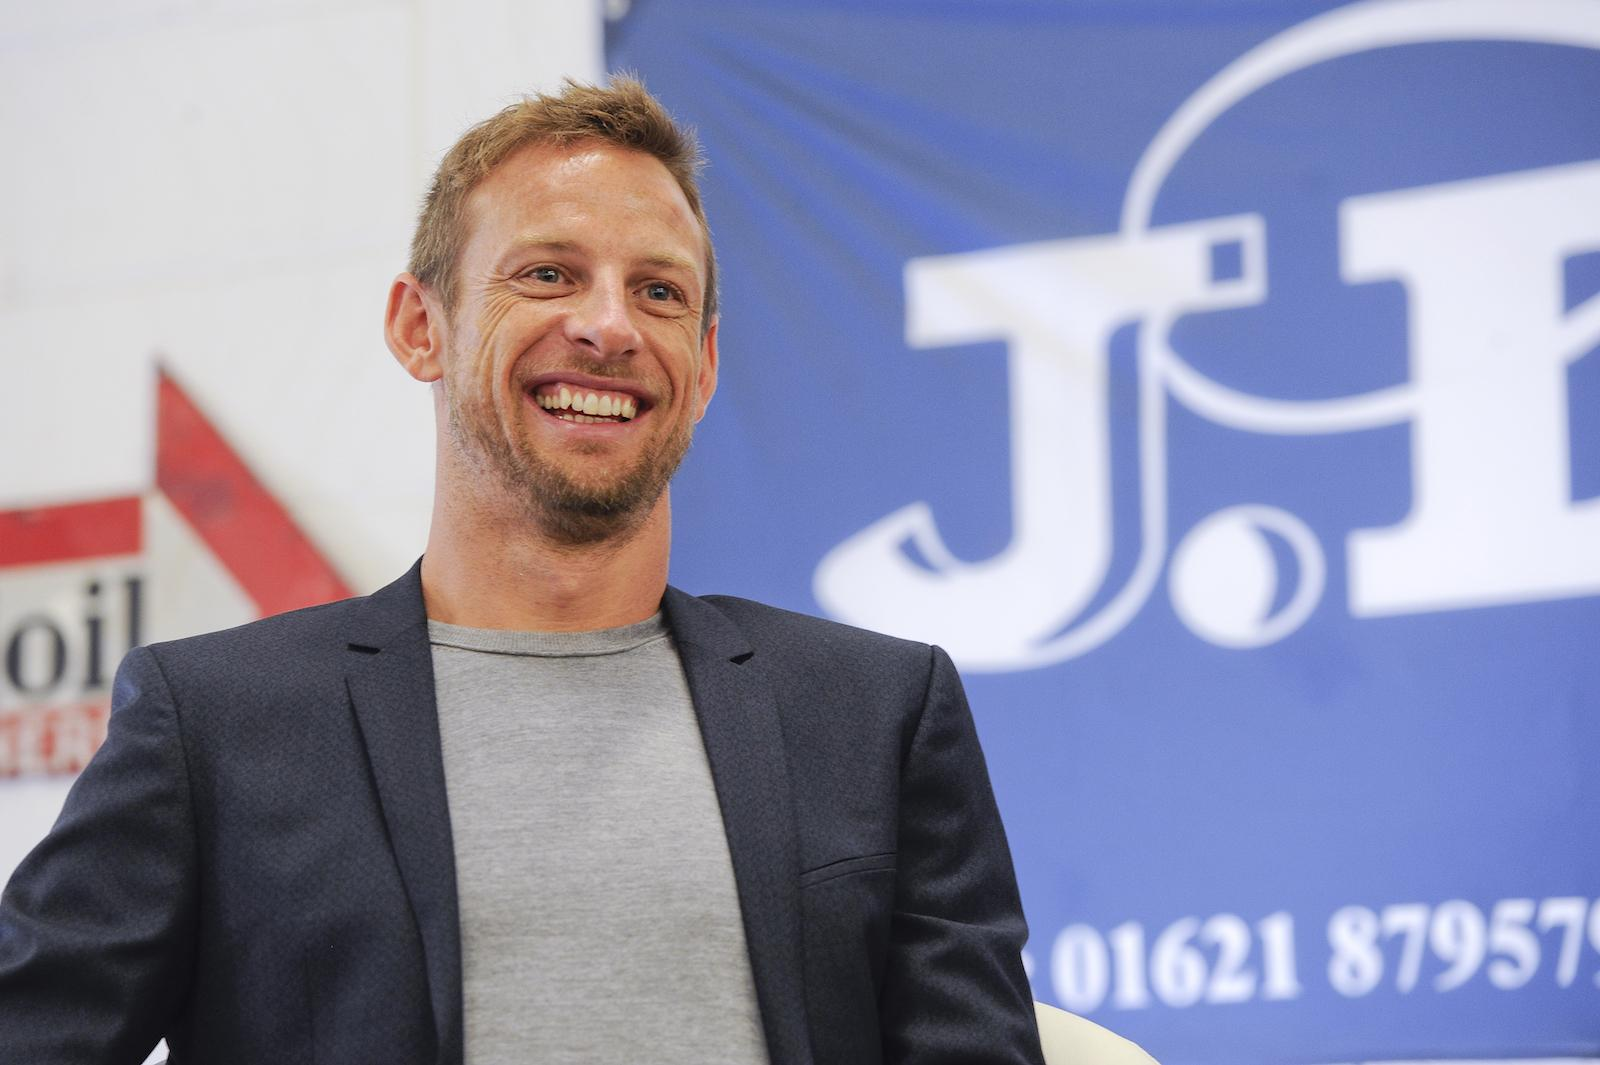 Jenson Button to race at Le Mans Classic and Revival